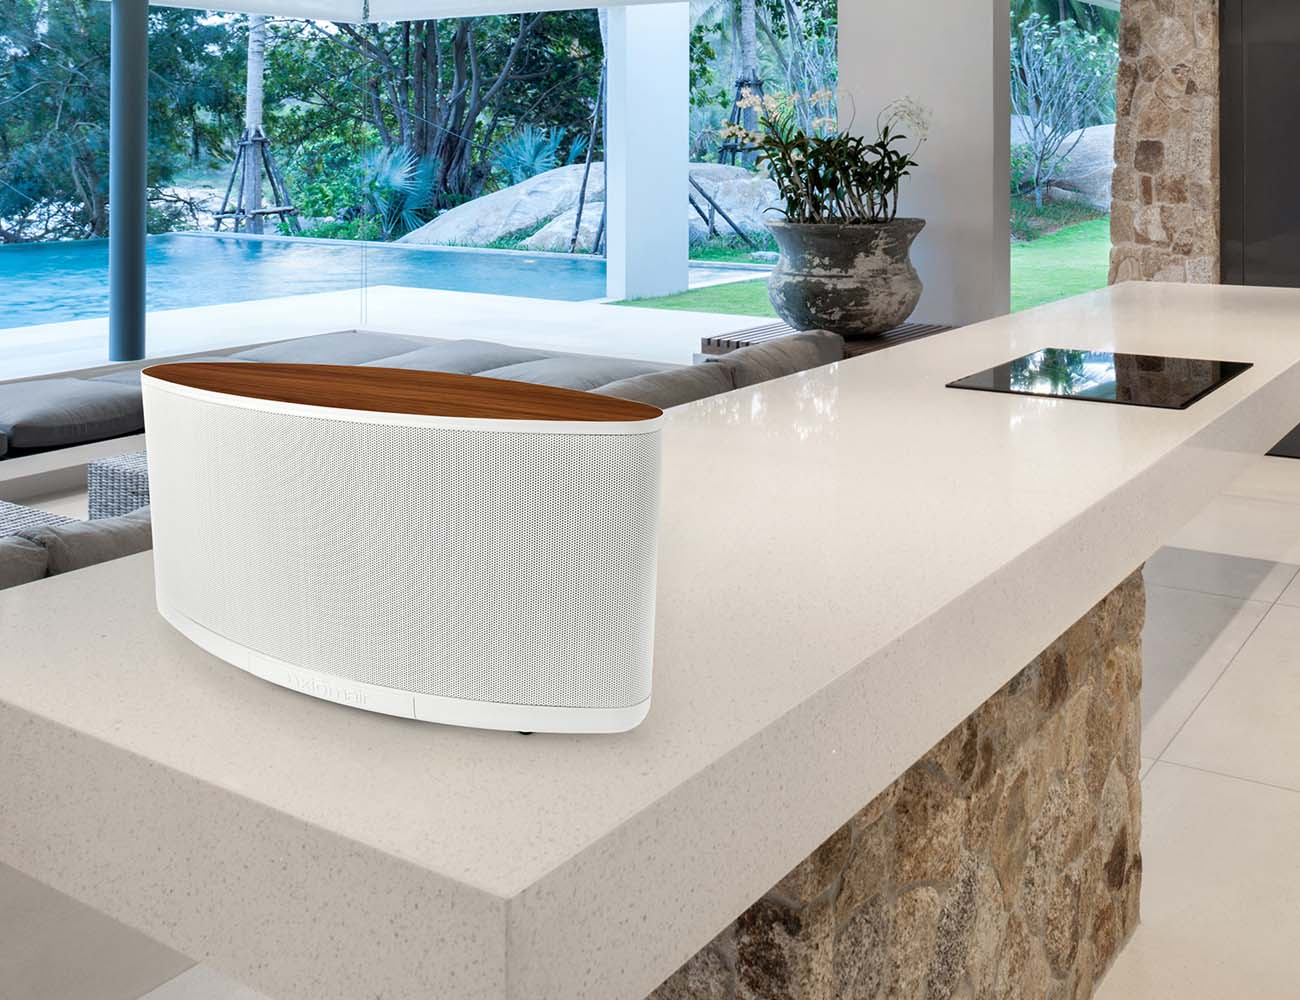 AxiomAir – Powerful Wireless Wi-Fi Speaker